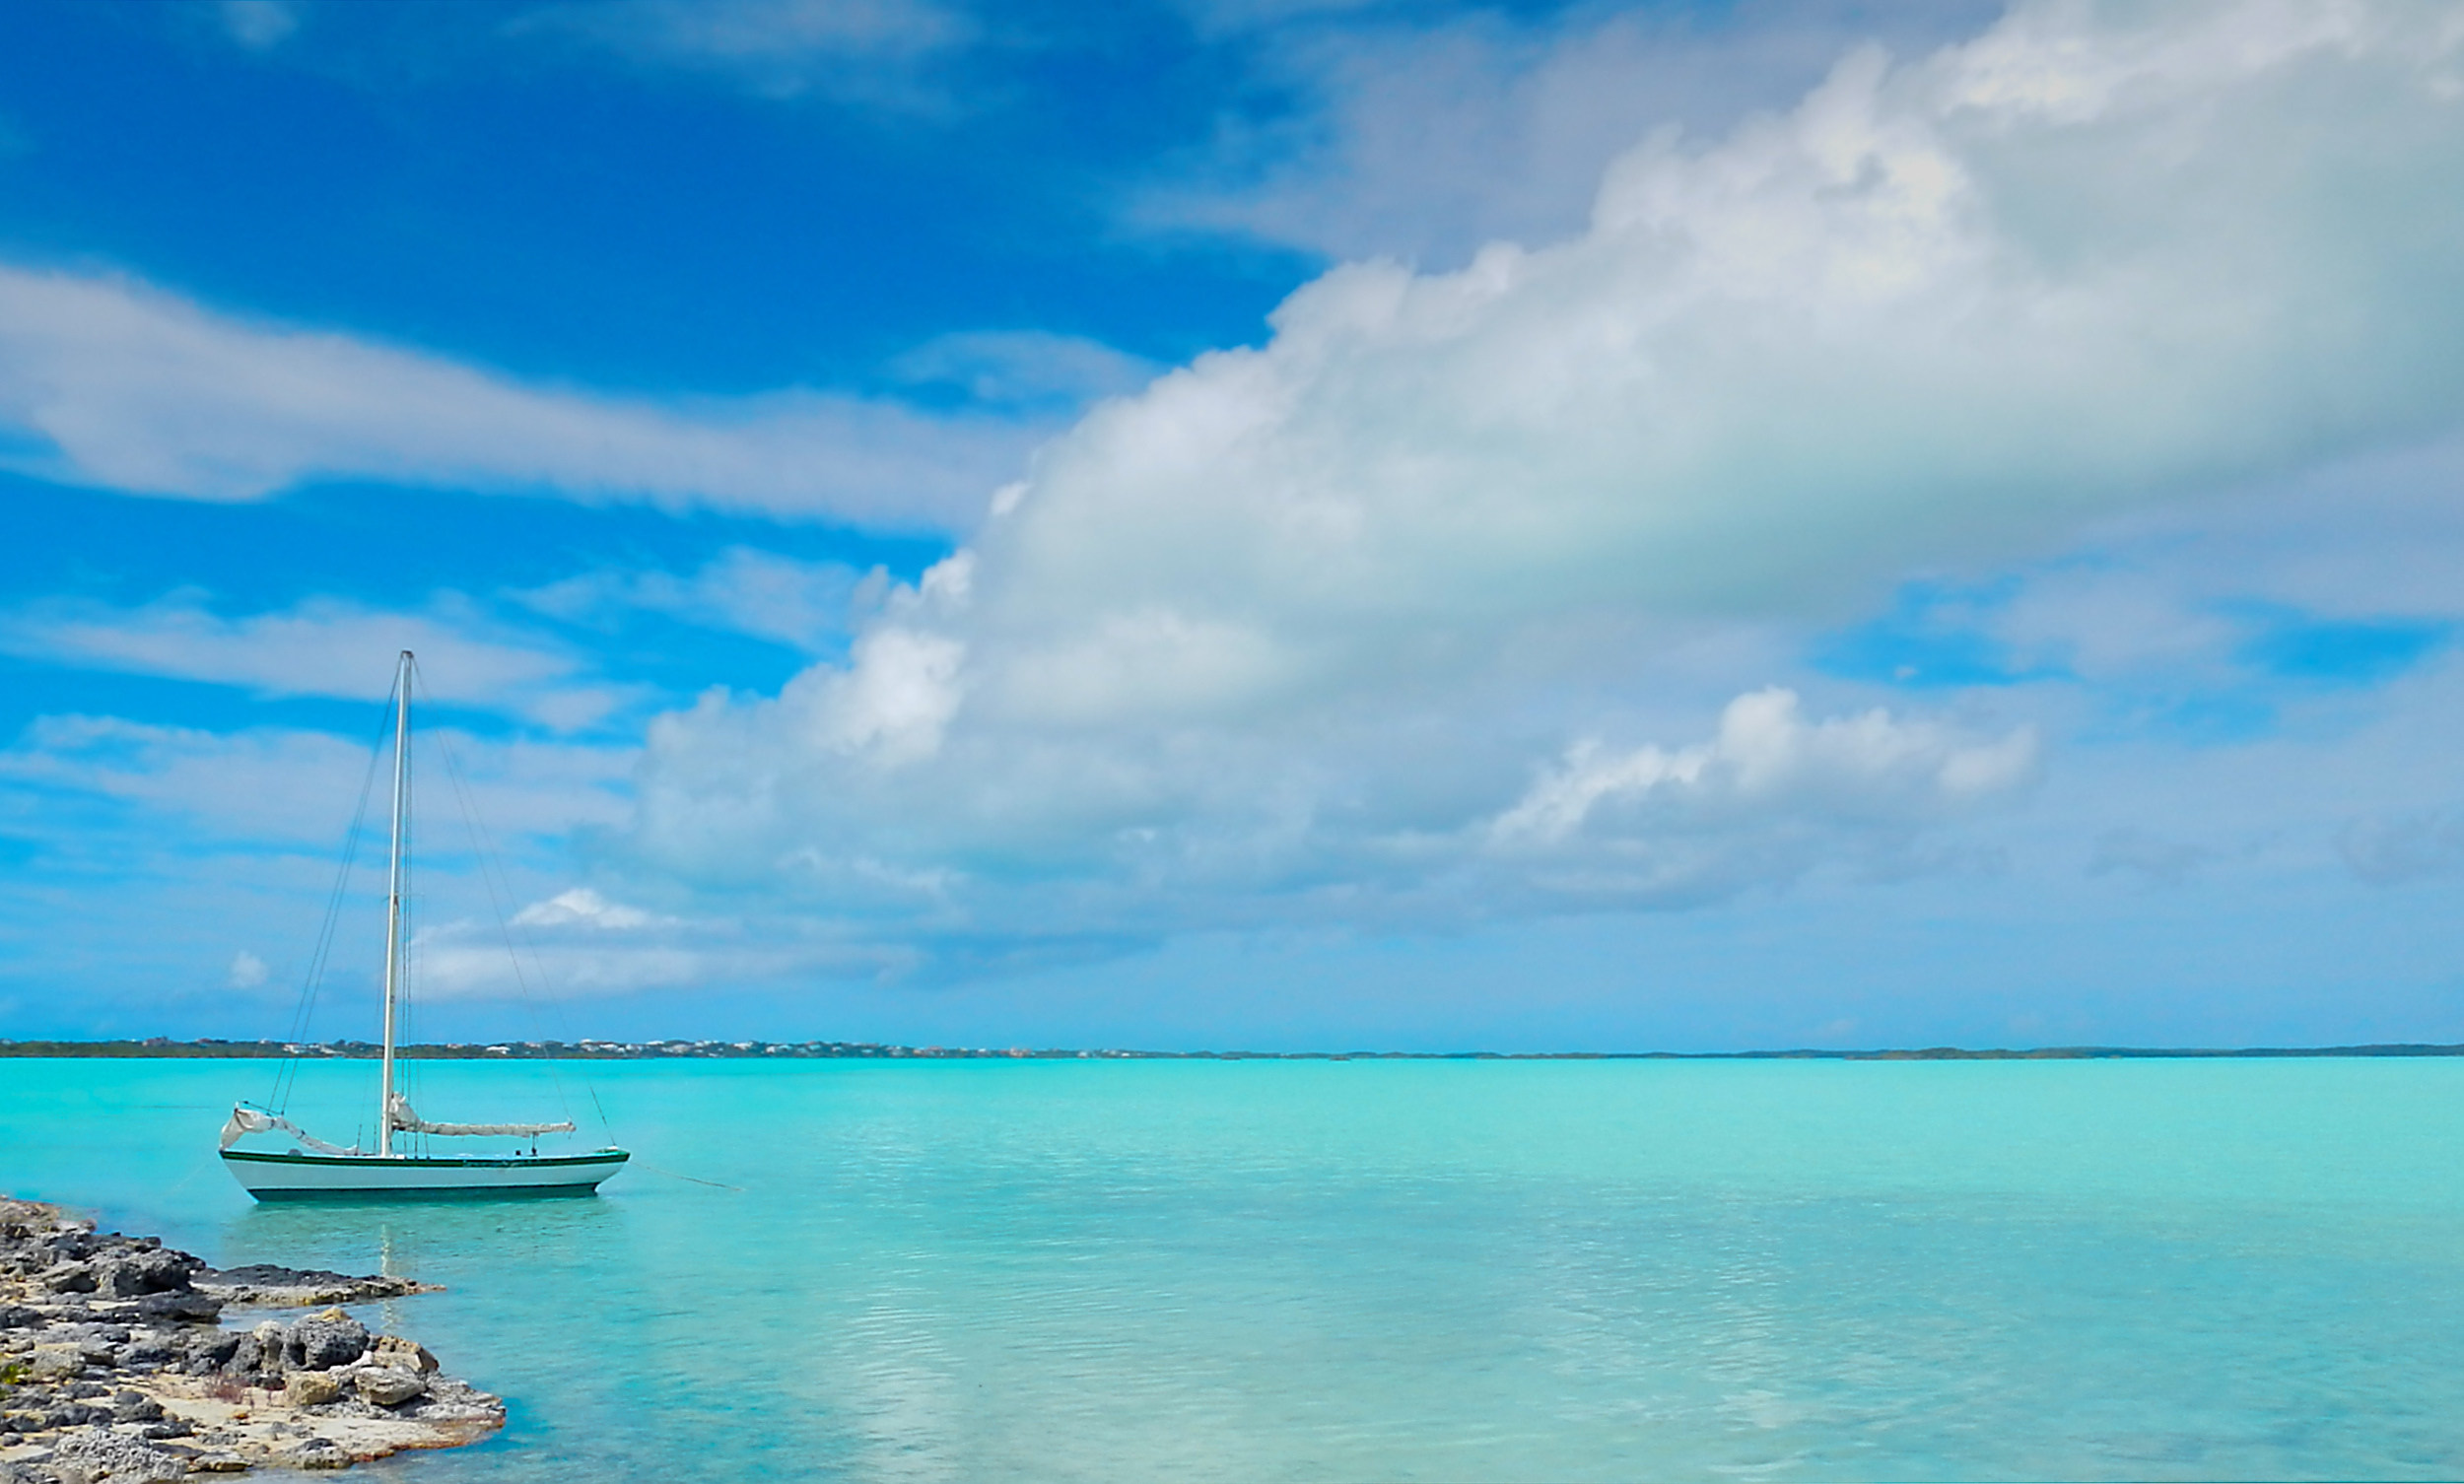 Sailboat in a peaceful harbor, Turks and Caicos